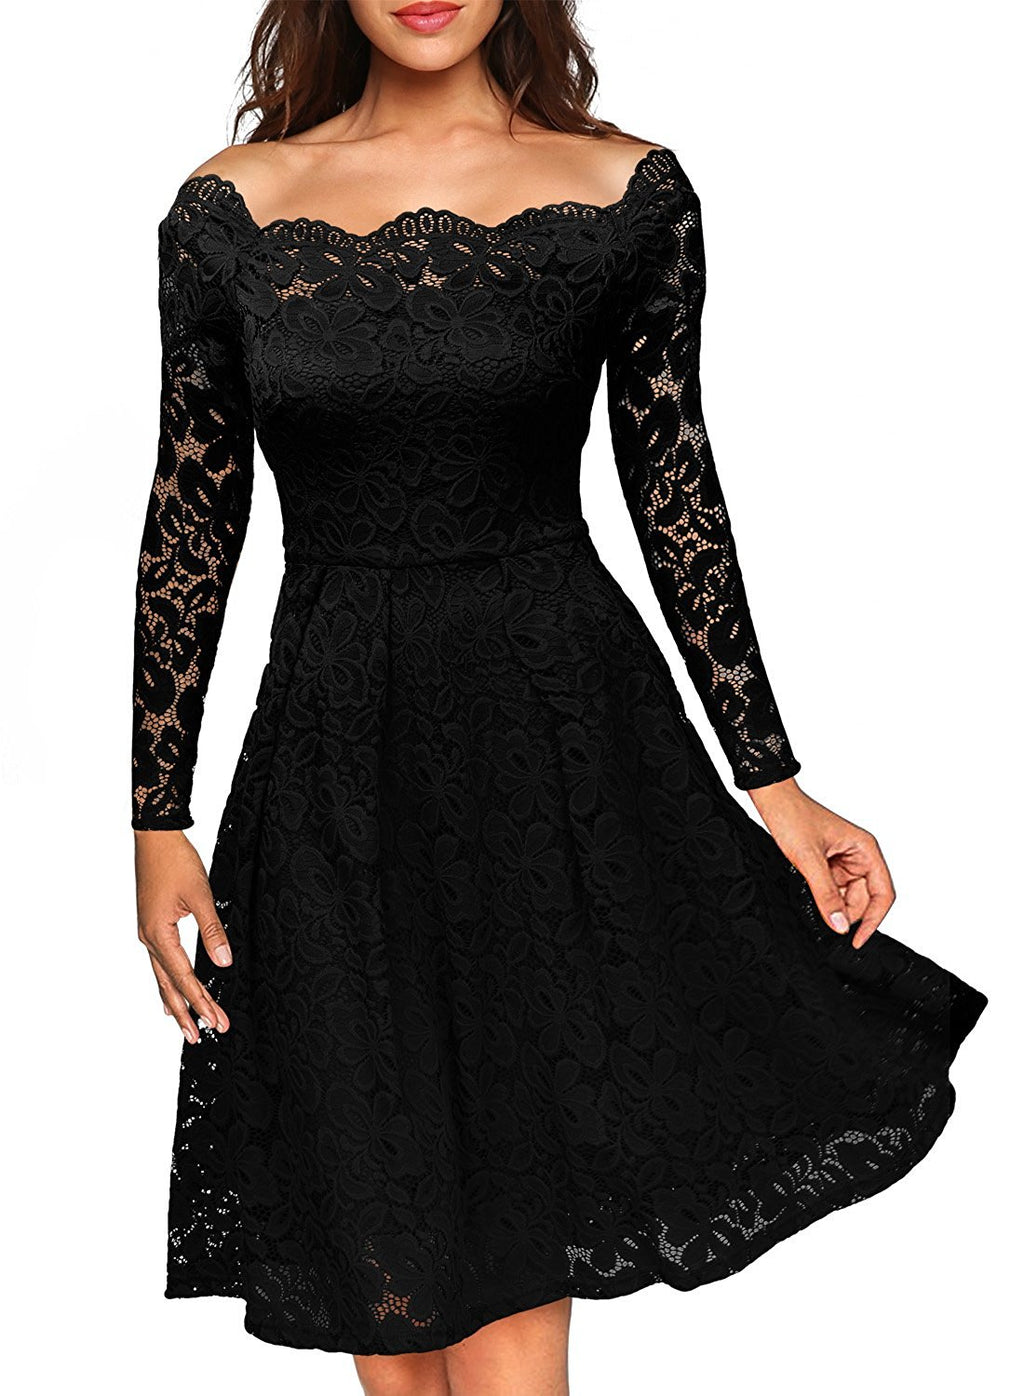 Floral Lace Boat Formal Swing Dress - Metfine